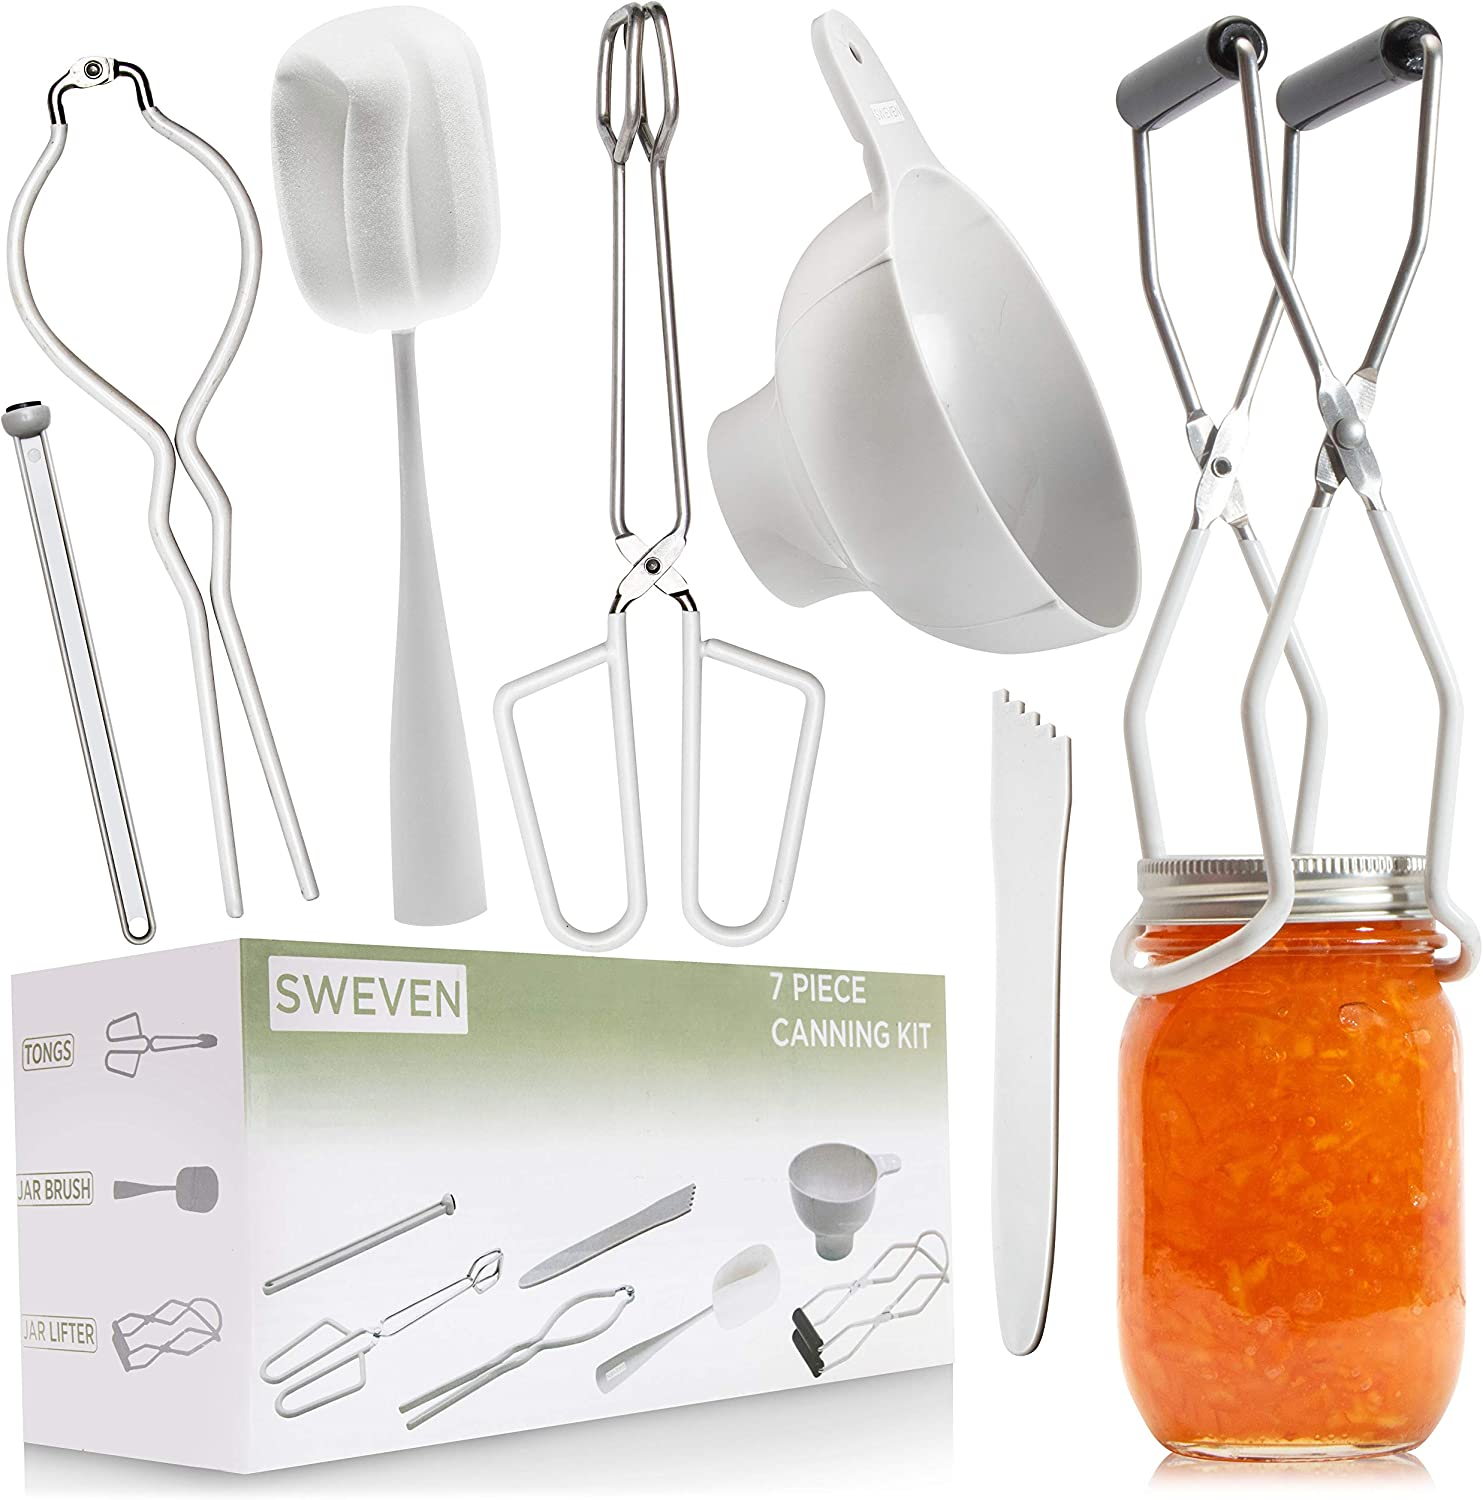 Premium Canning Kit | Canning Supplies Starter Kit | 7 Piece Canning Set | Canning Tools Included: Canning Tongs, Bubble Popper, Jar Lifter, Canning Funnel, Magnetic Lid Lifter, Jar Brush, Jar Wrench